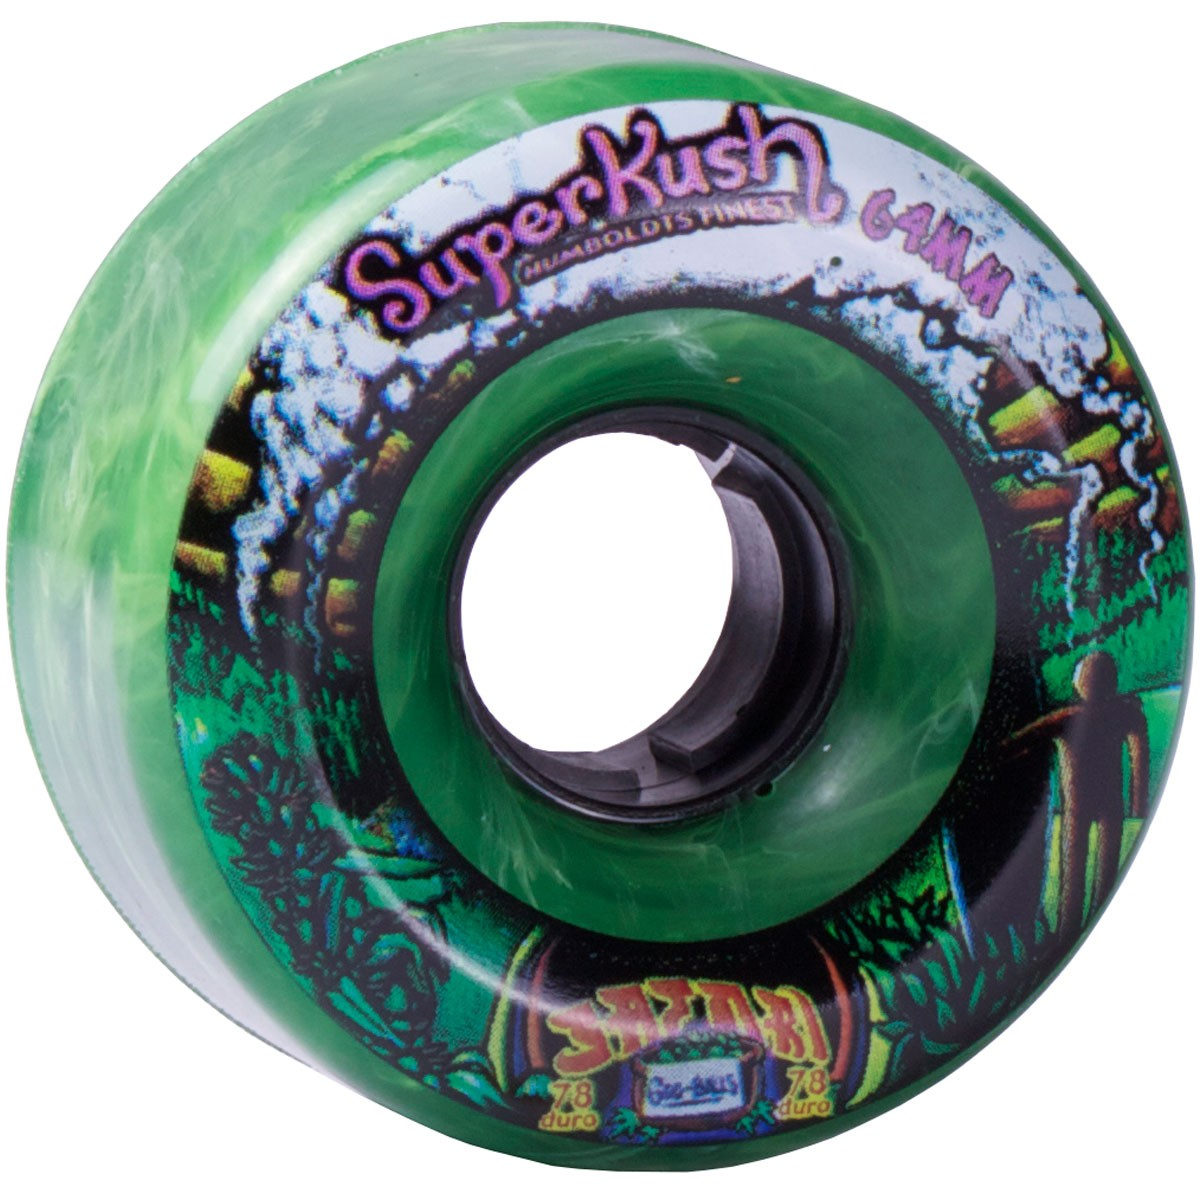 Satori Movement Goo Balls Longboard Wheels - 64mm Super Kush